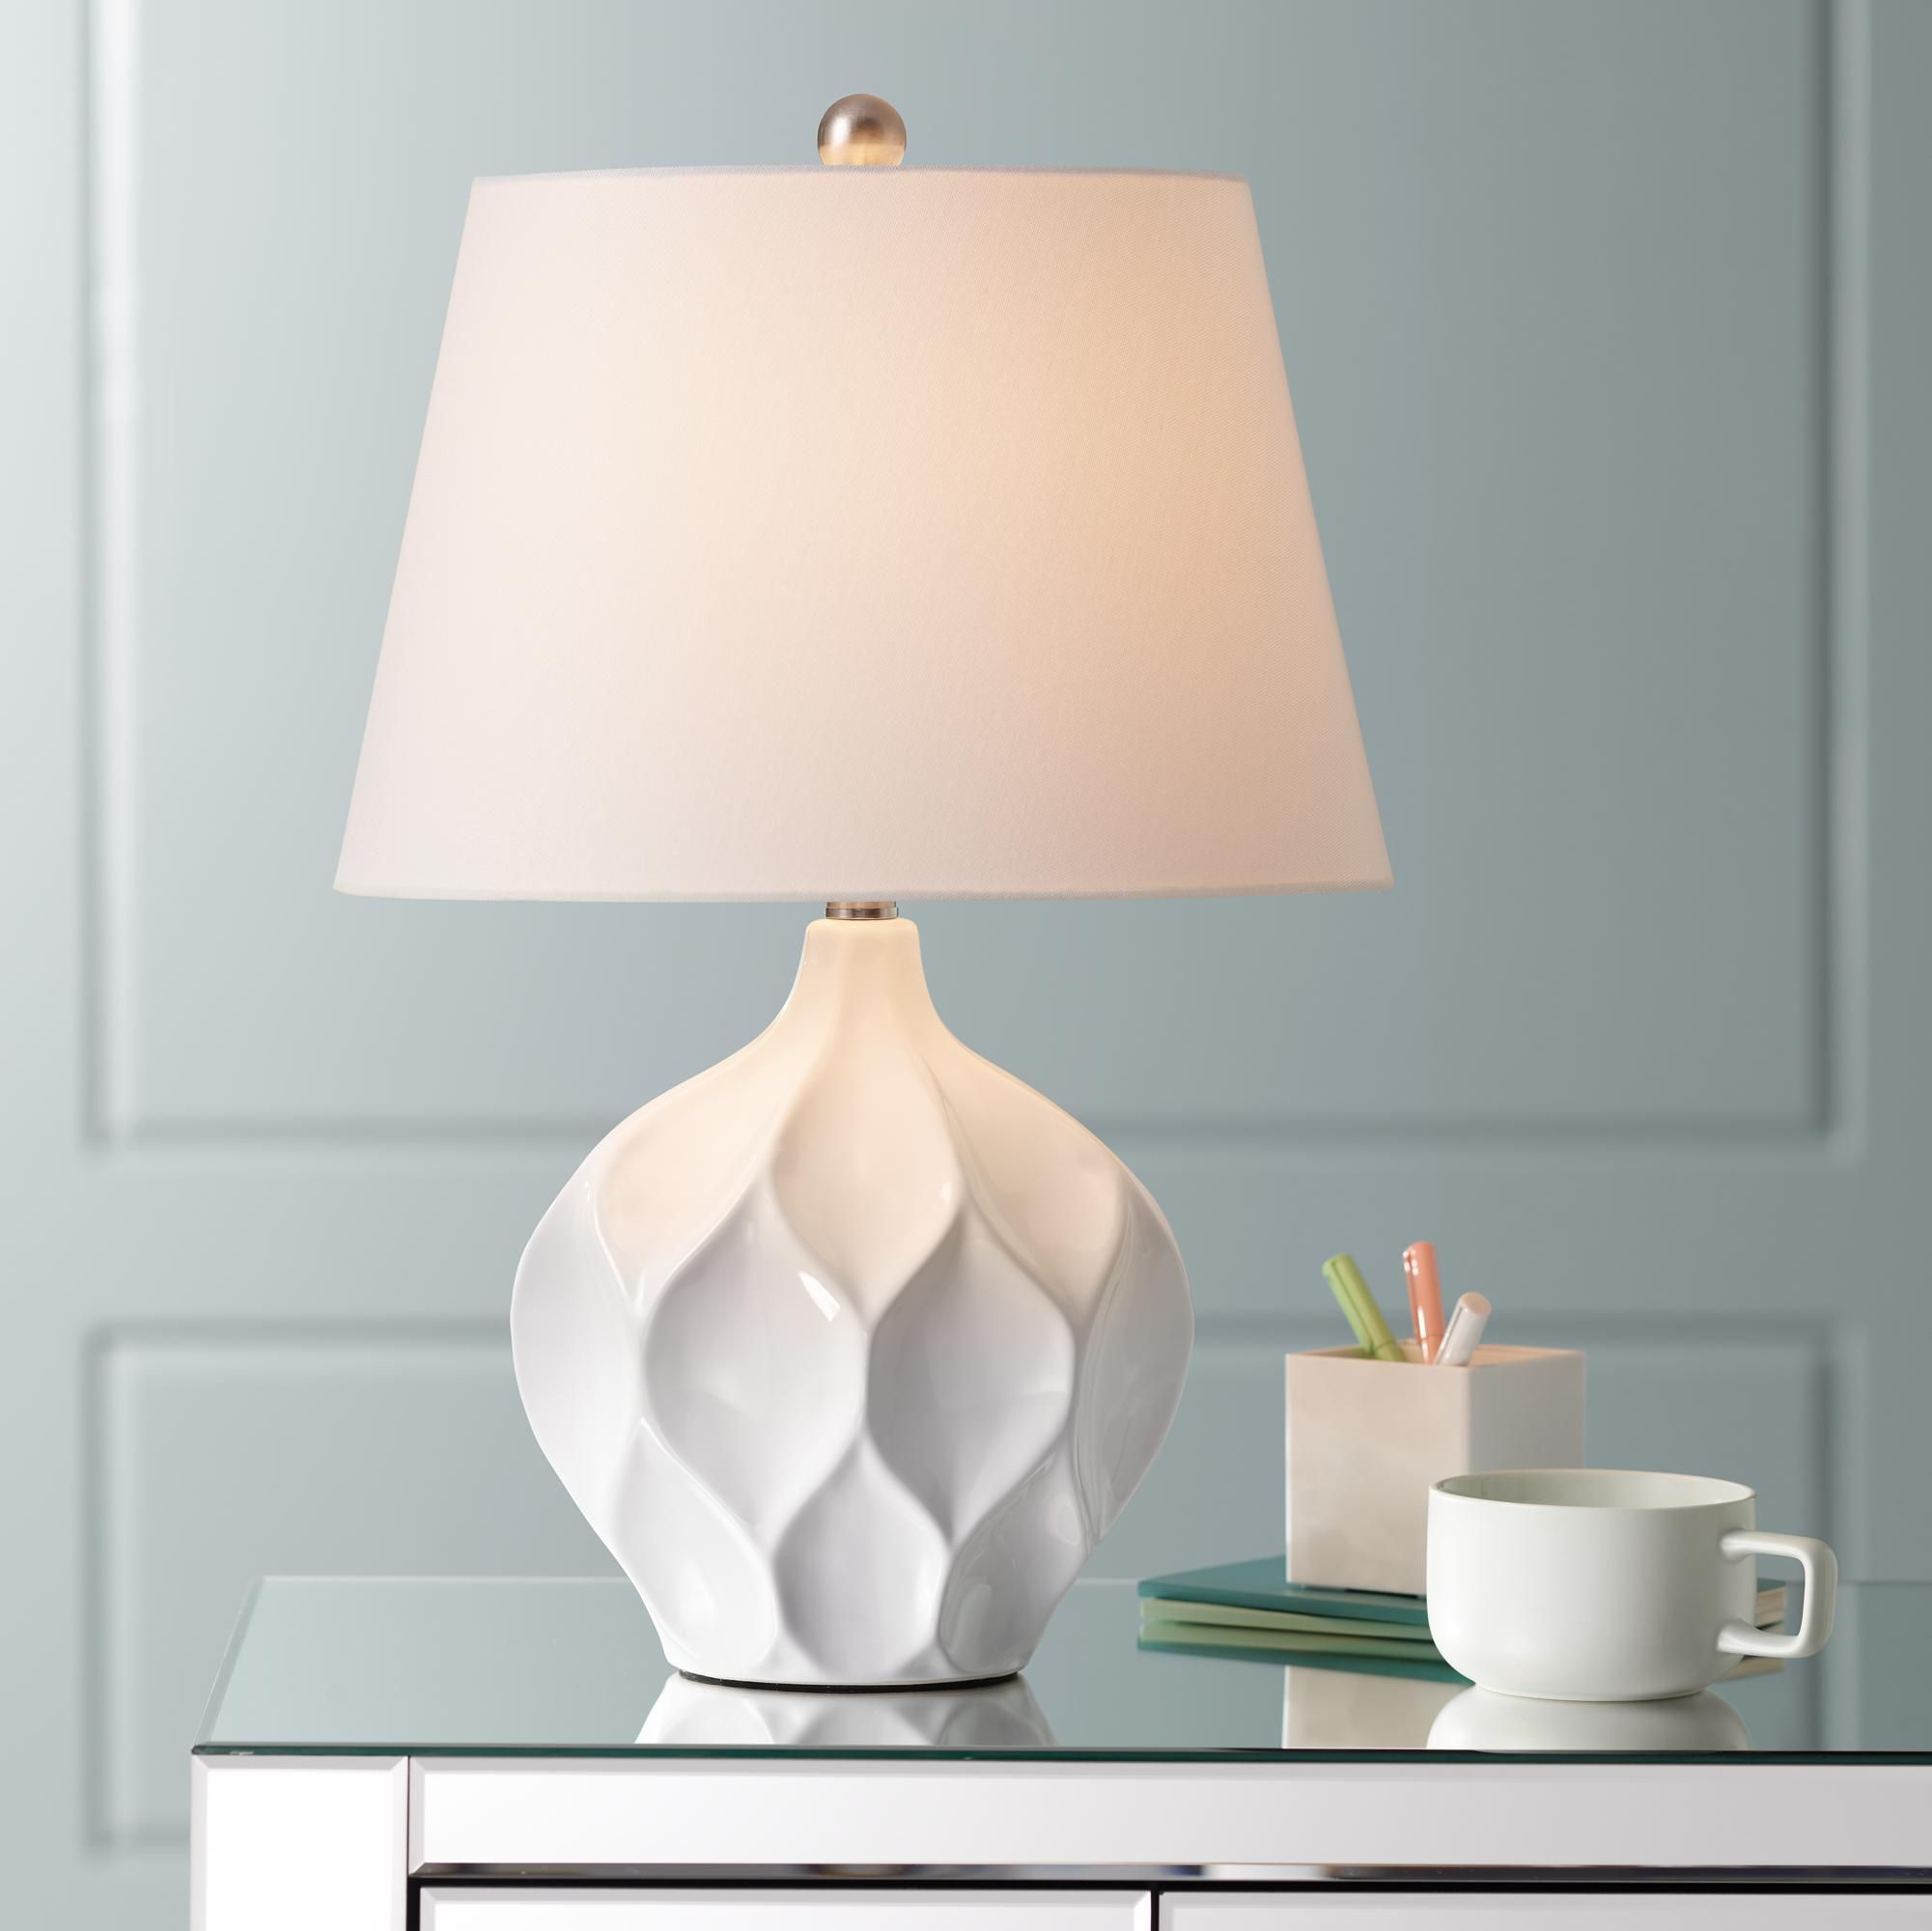 Table Lamps Dobbs White Ceramic Accent Table Lamp White Ceramic Lamps Bedside Table Lamps Ceramic Table Lamps